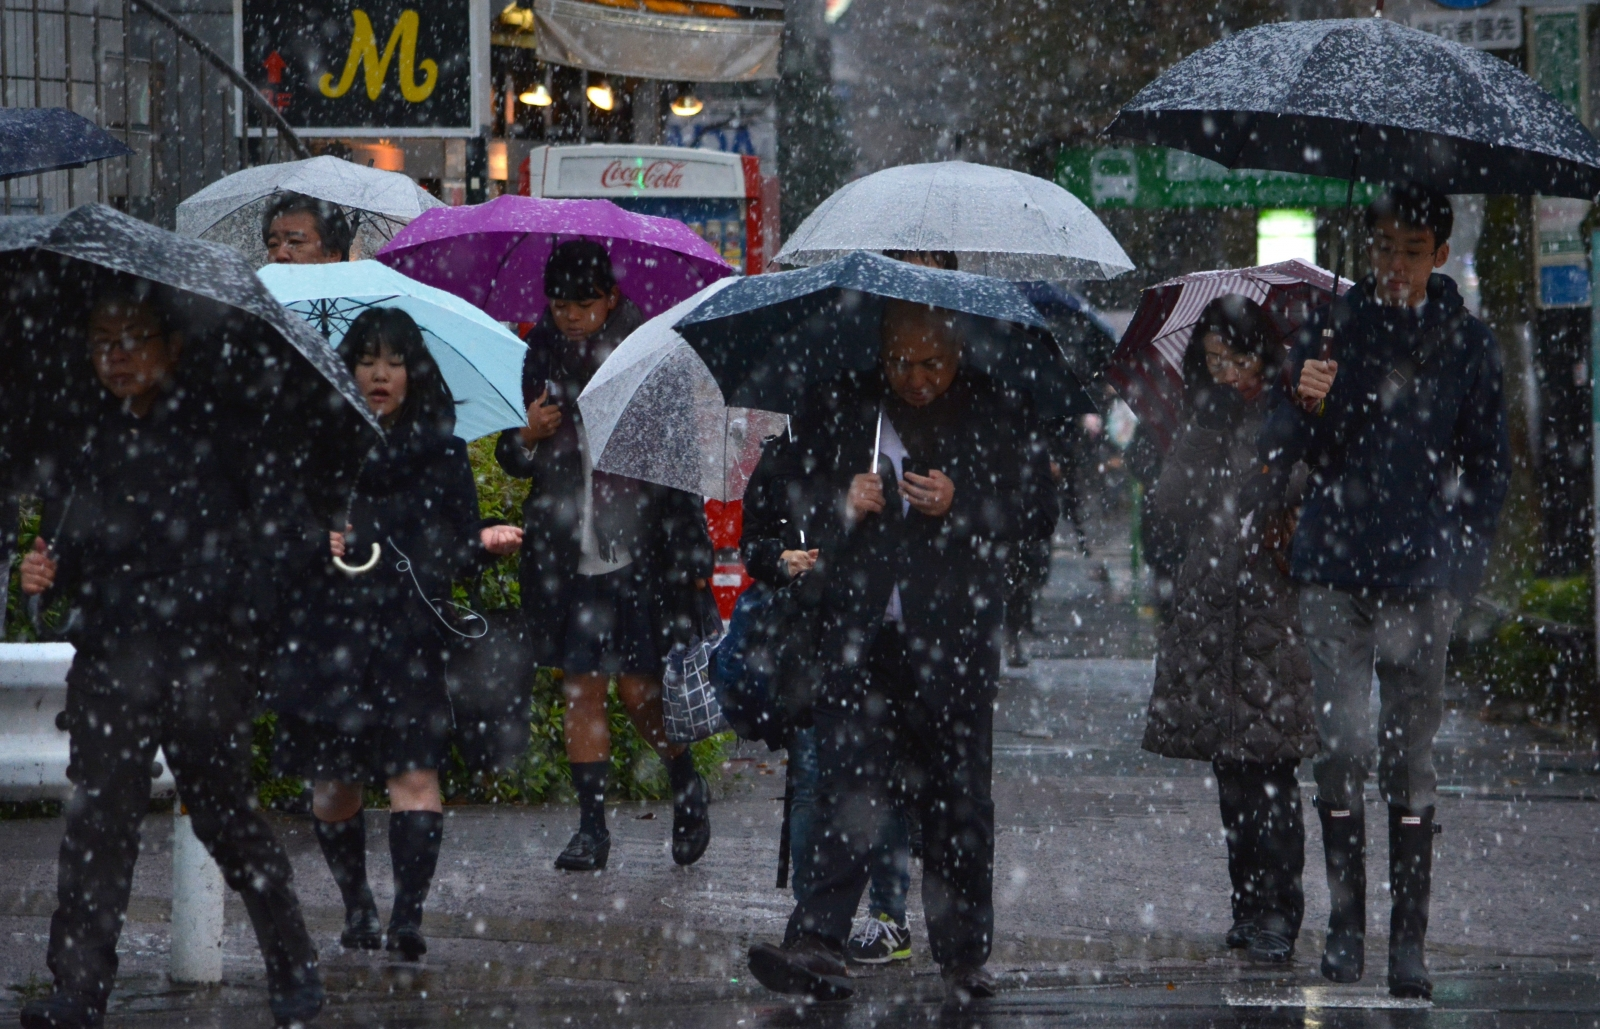 First Time in 54 Years Tokyo experience Snowfall